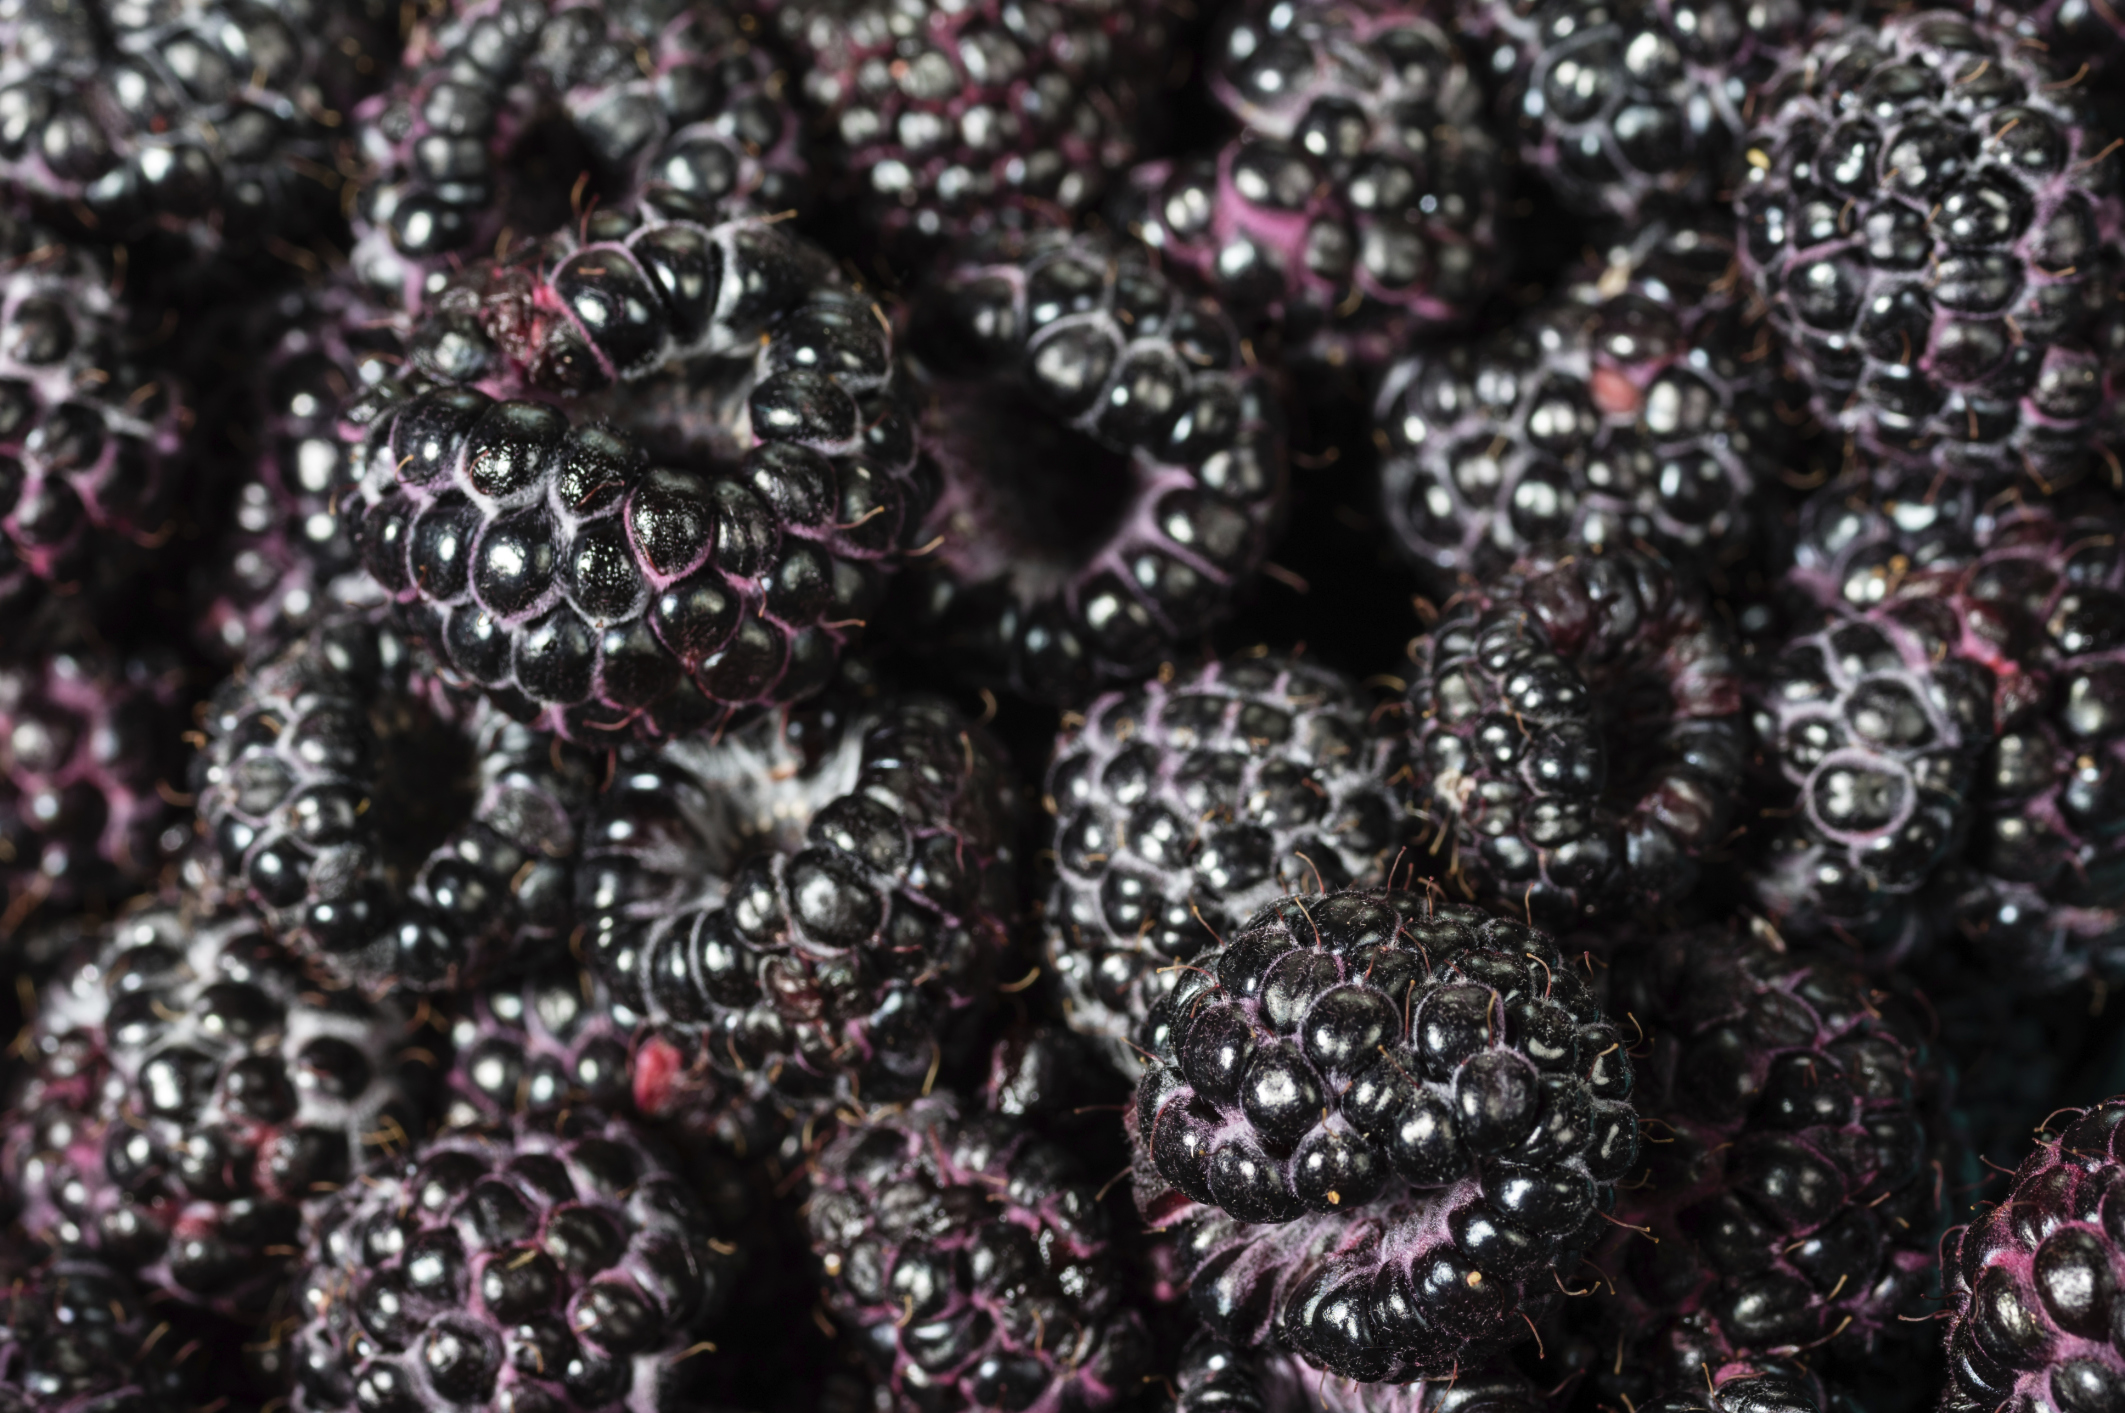 Research: Black raspberries high in anti-oxidants, but more may not mean better